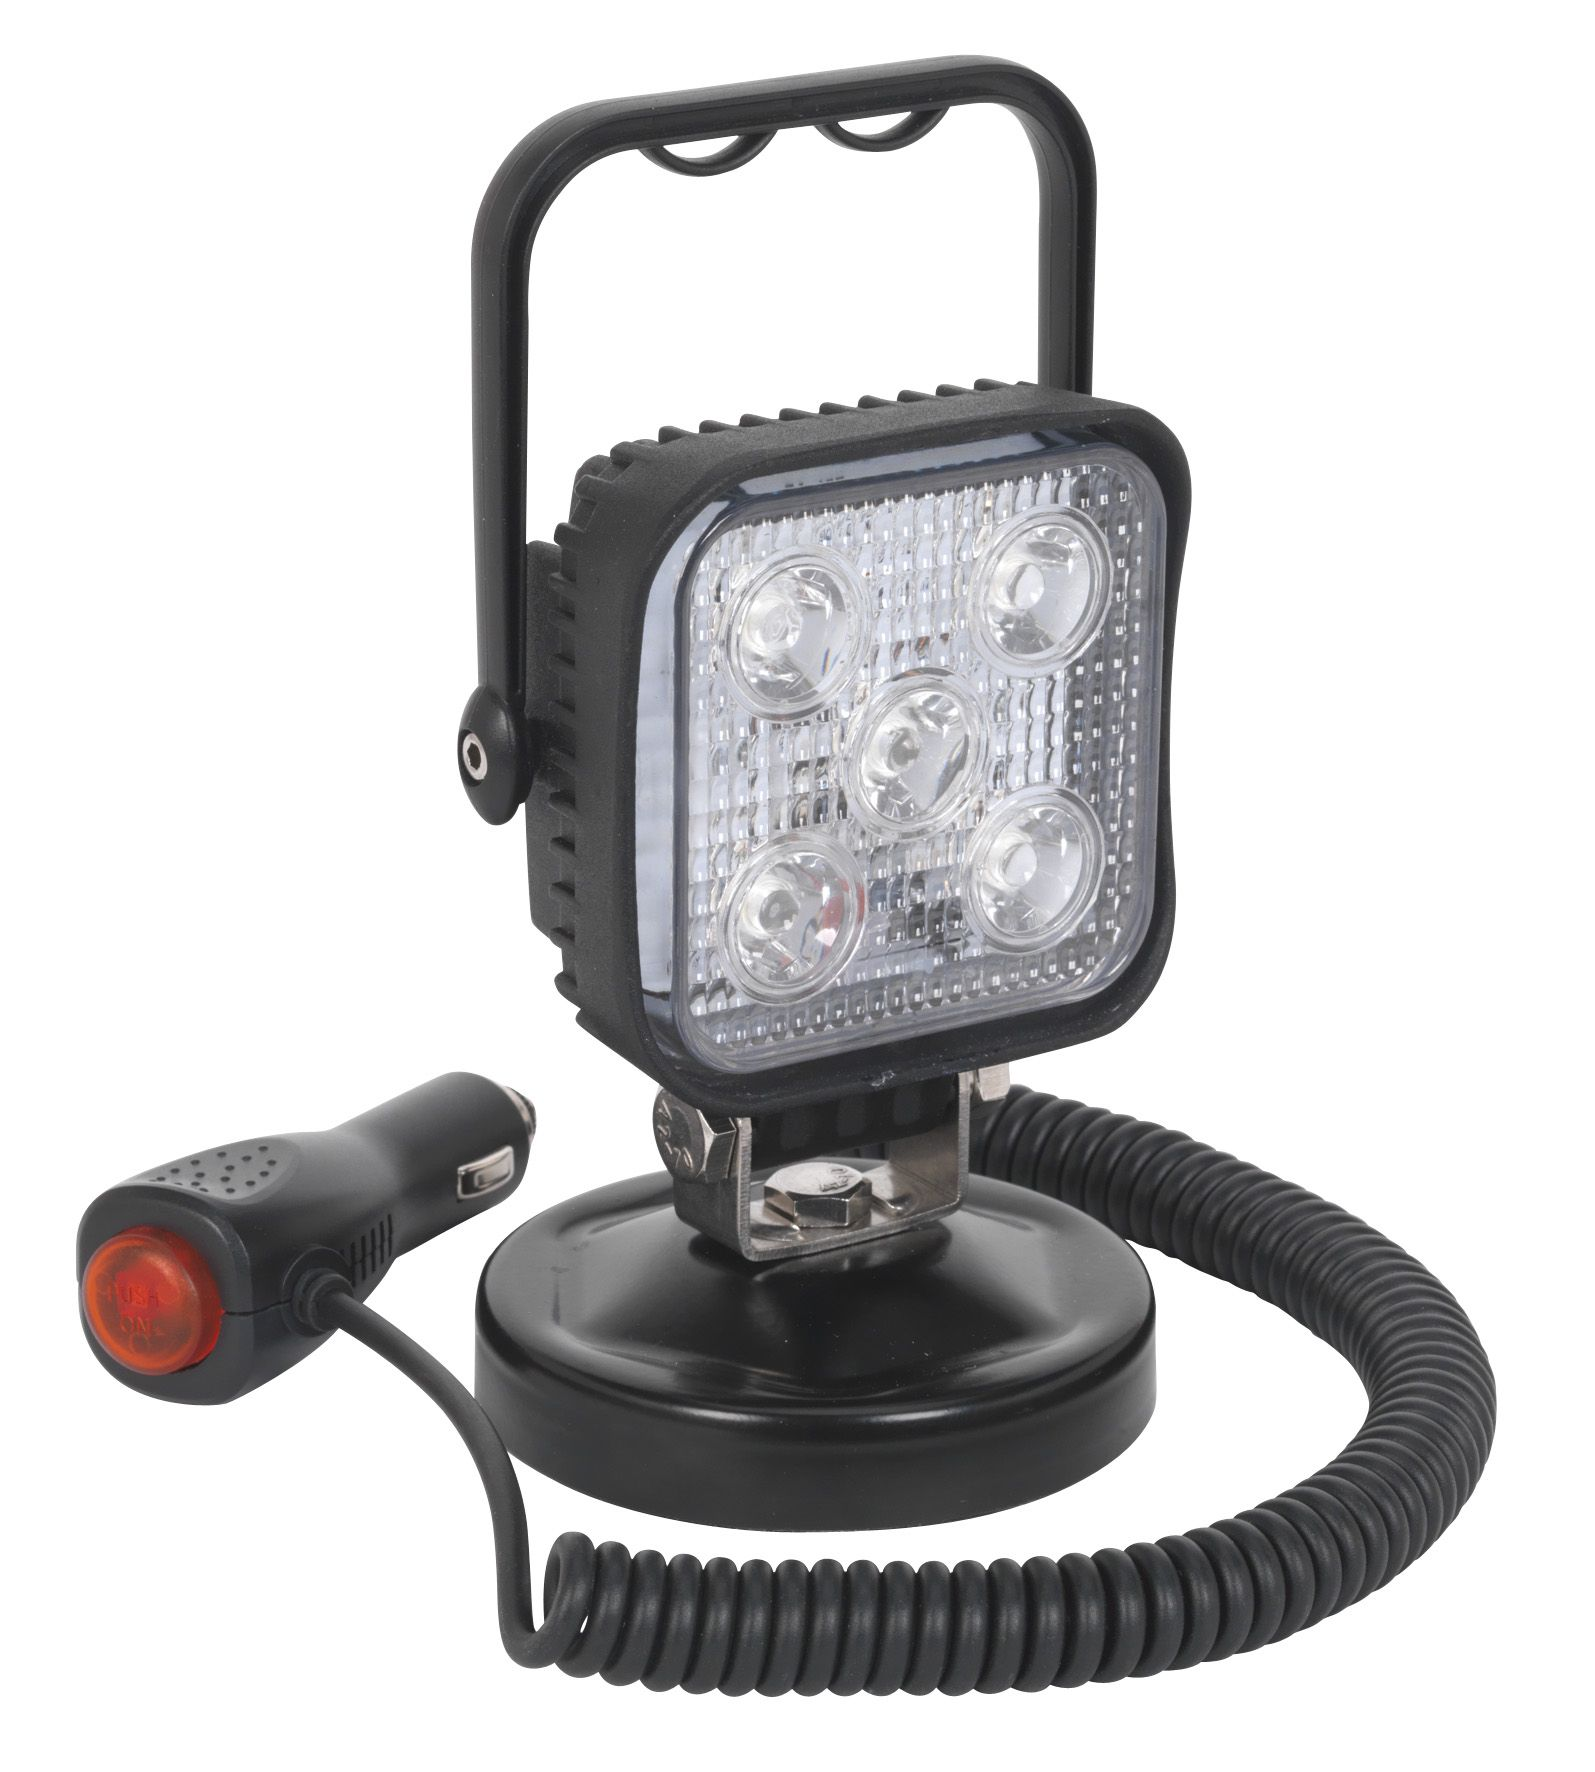 Sealey Portable Floodlight 15W LED 12V with Magnetic Base